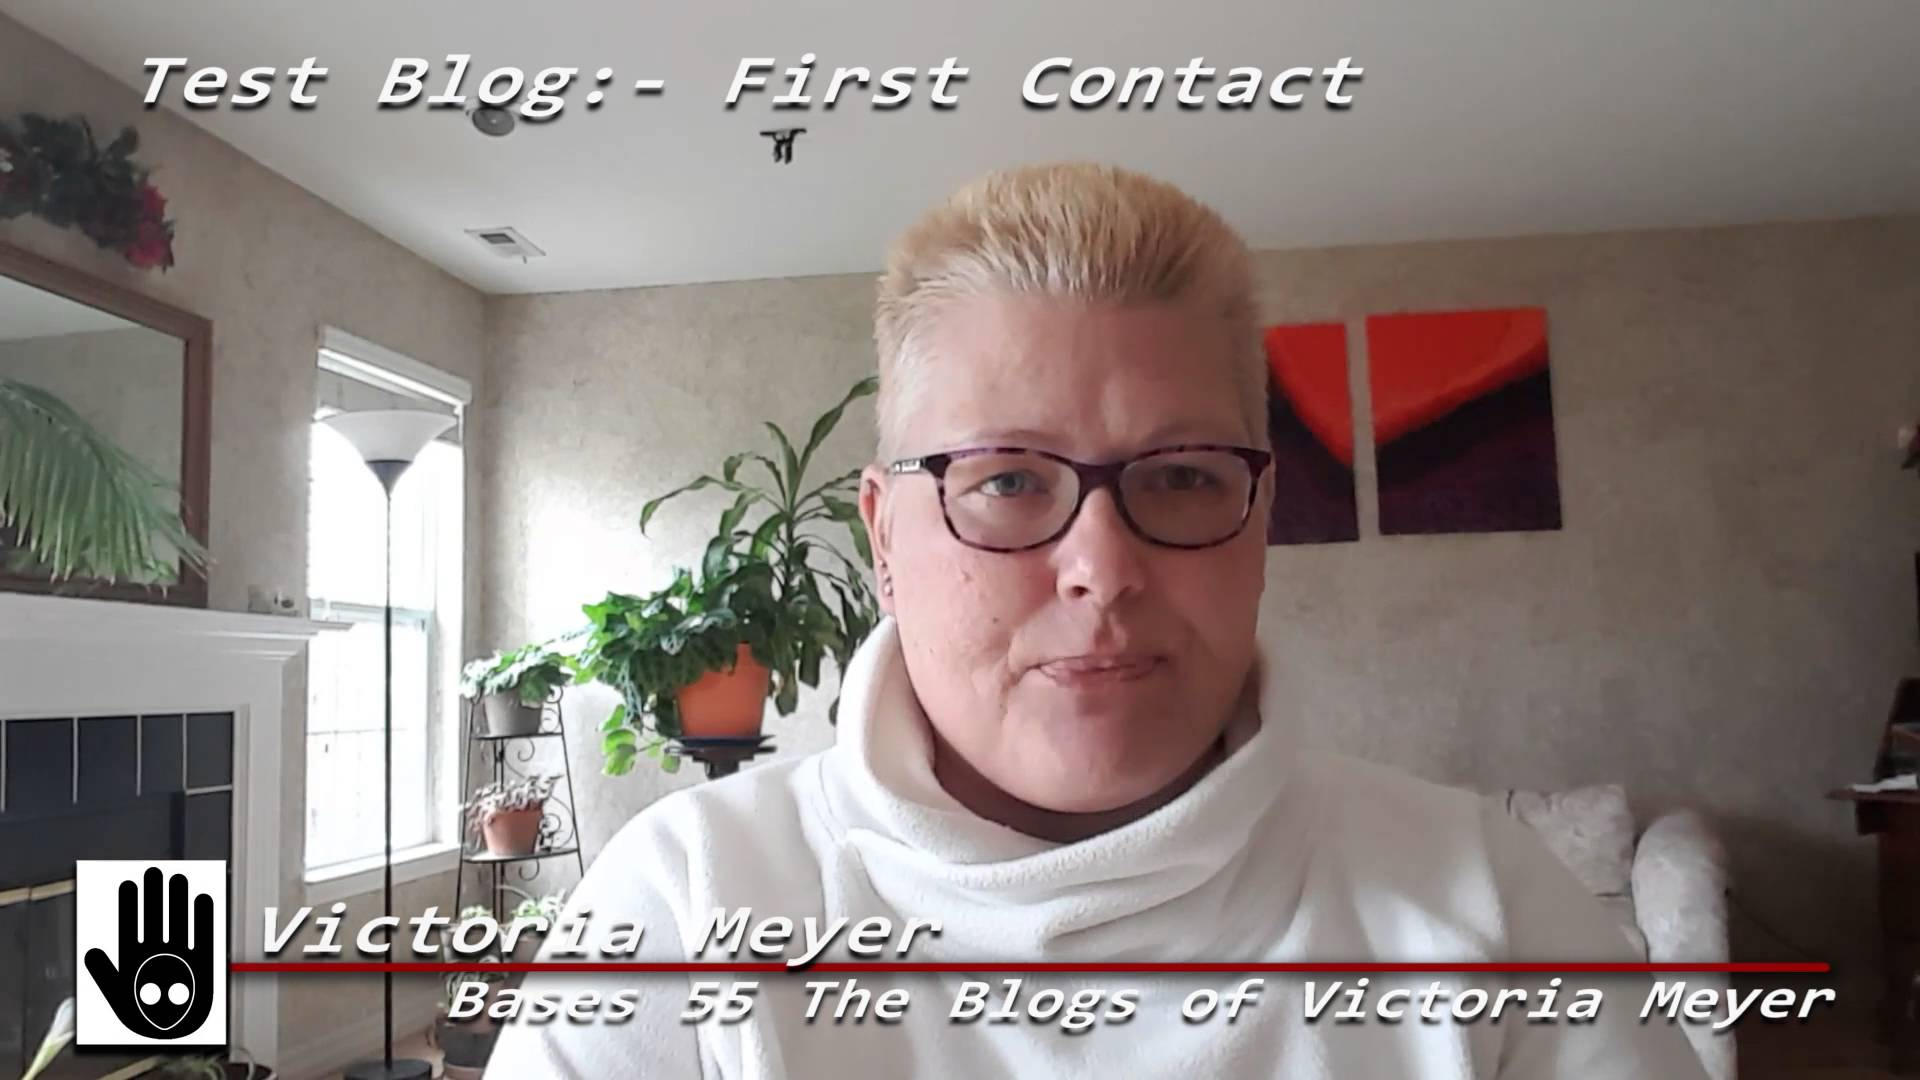 Bases 55 Part 1 Blogs of Victoria Meyer